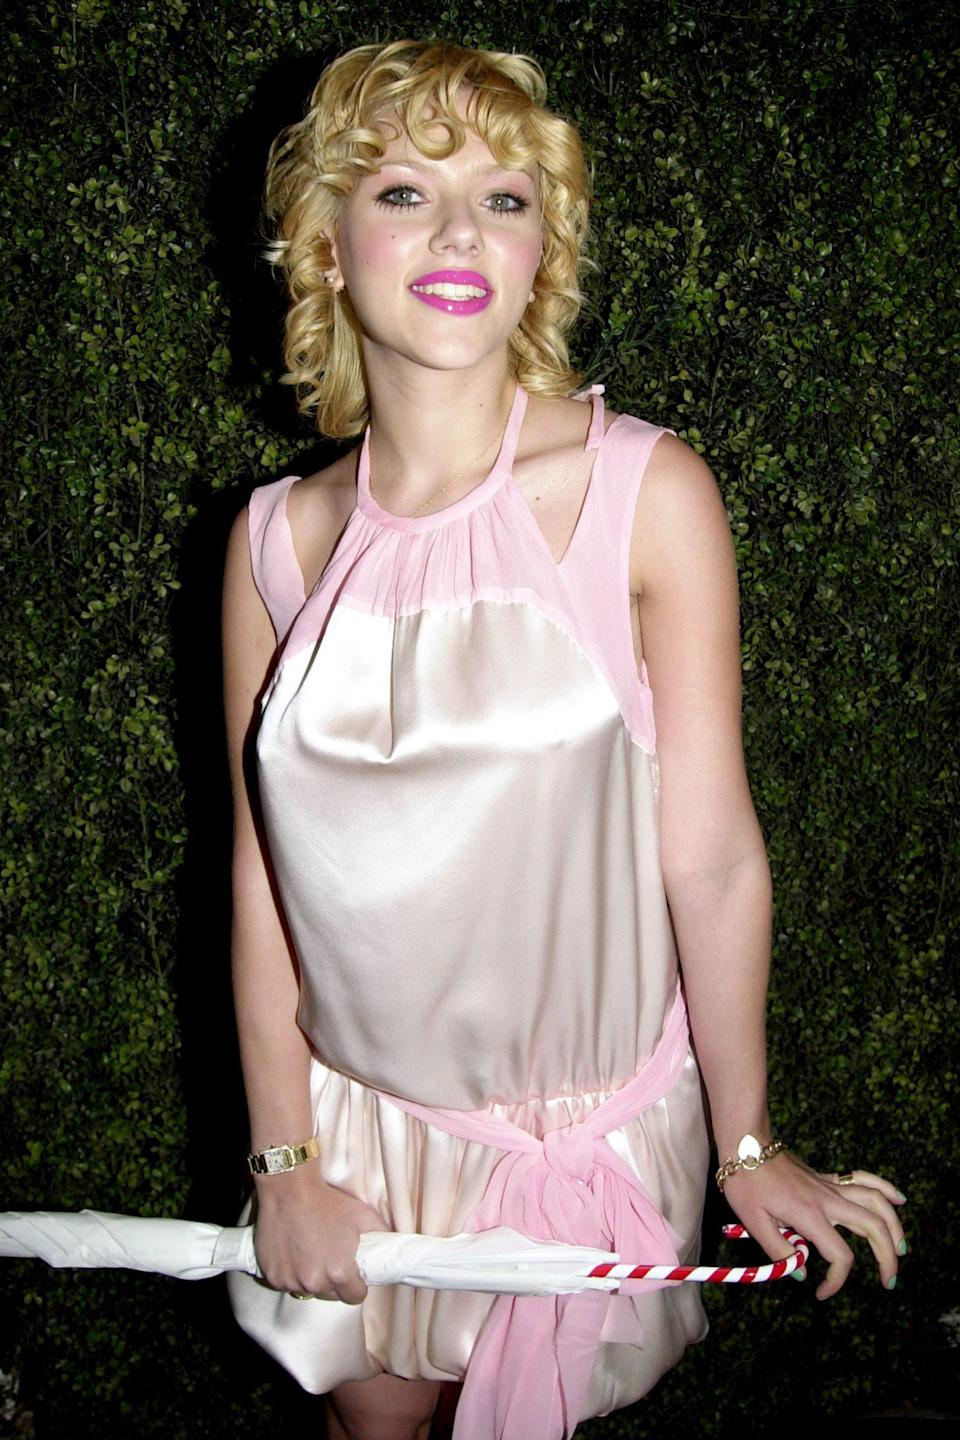 <p>Barrel curls, pink lips and a candy-striped parasol all added to the doll-like vibes she rocked at Cynthia Rowley's 2004 fashion show.</p>